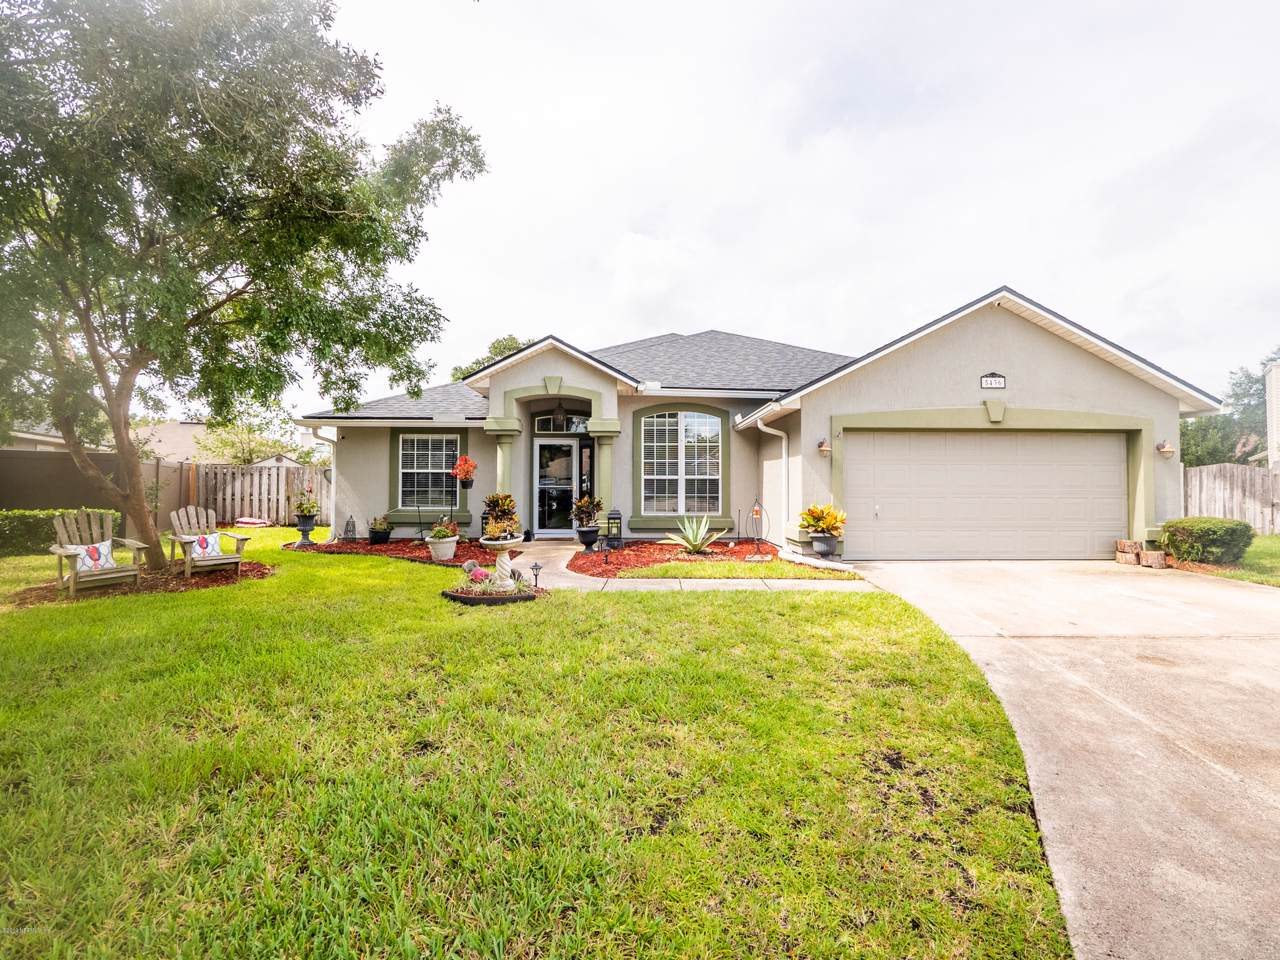 5436 Spring Ridge Ct - Photo 1